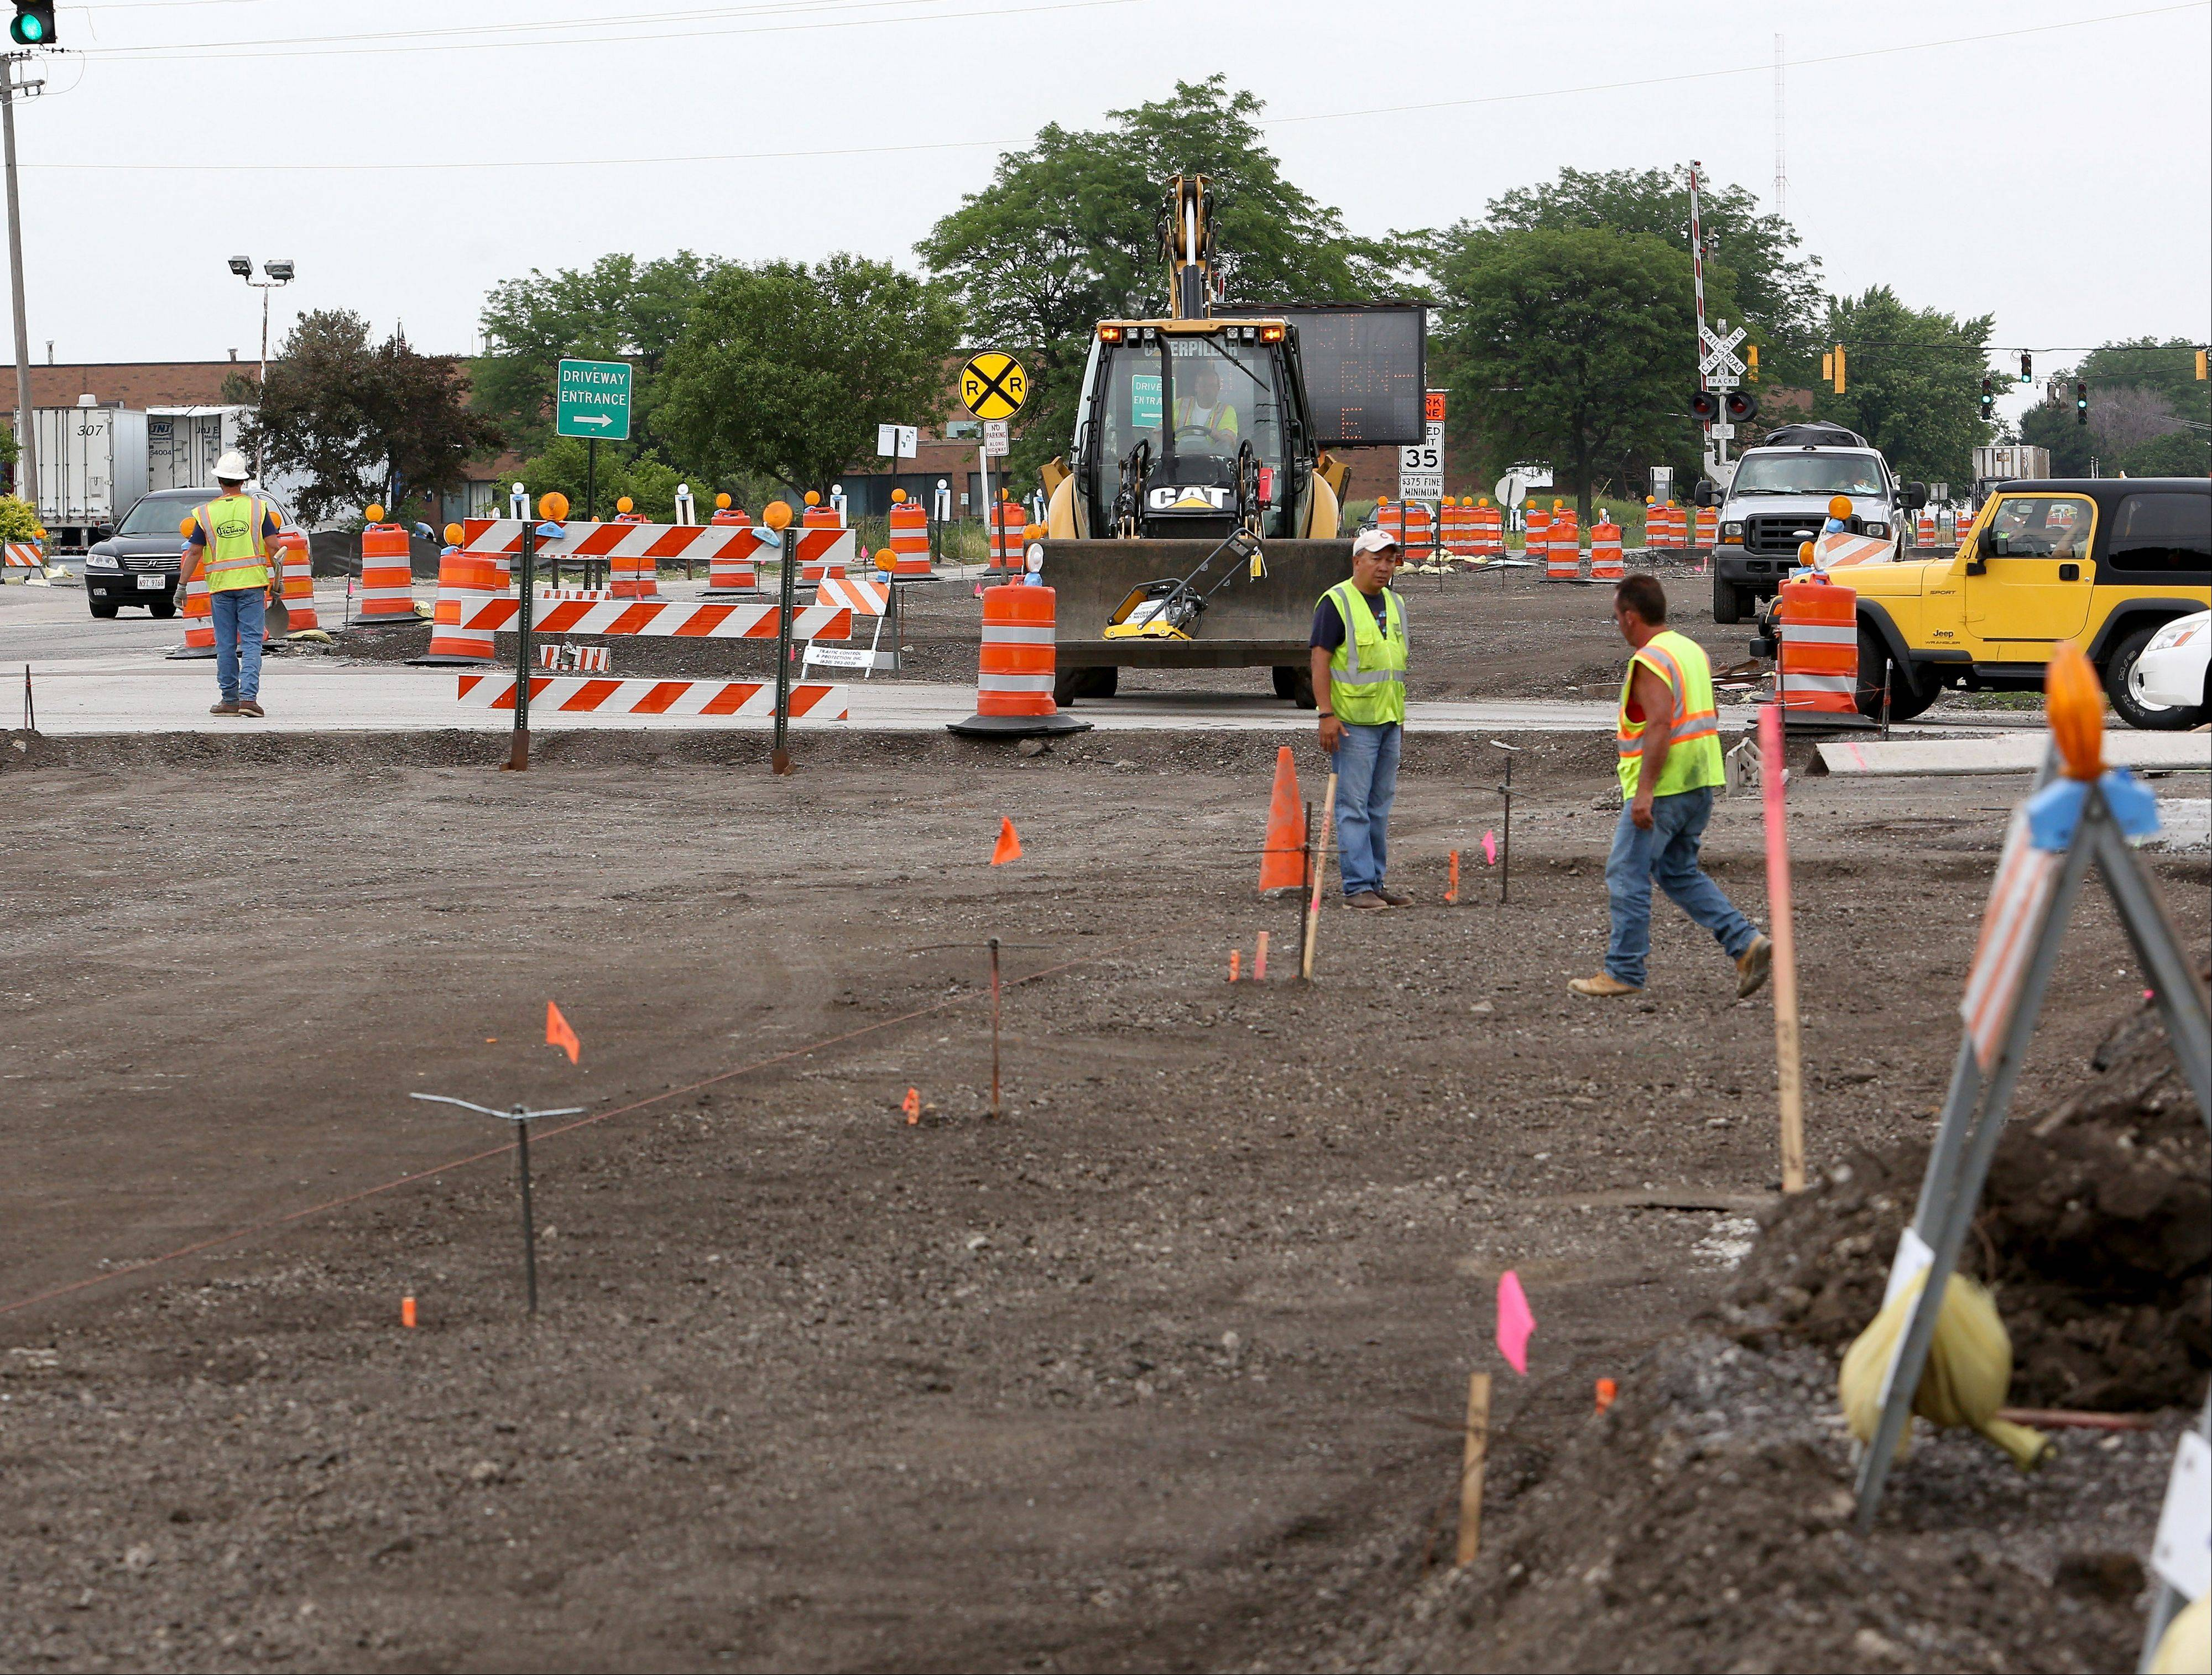 Village officials say area businesses have suffered for nearly two years as work to widen Route 53 near Addison and Itasca has dragged on.